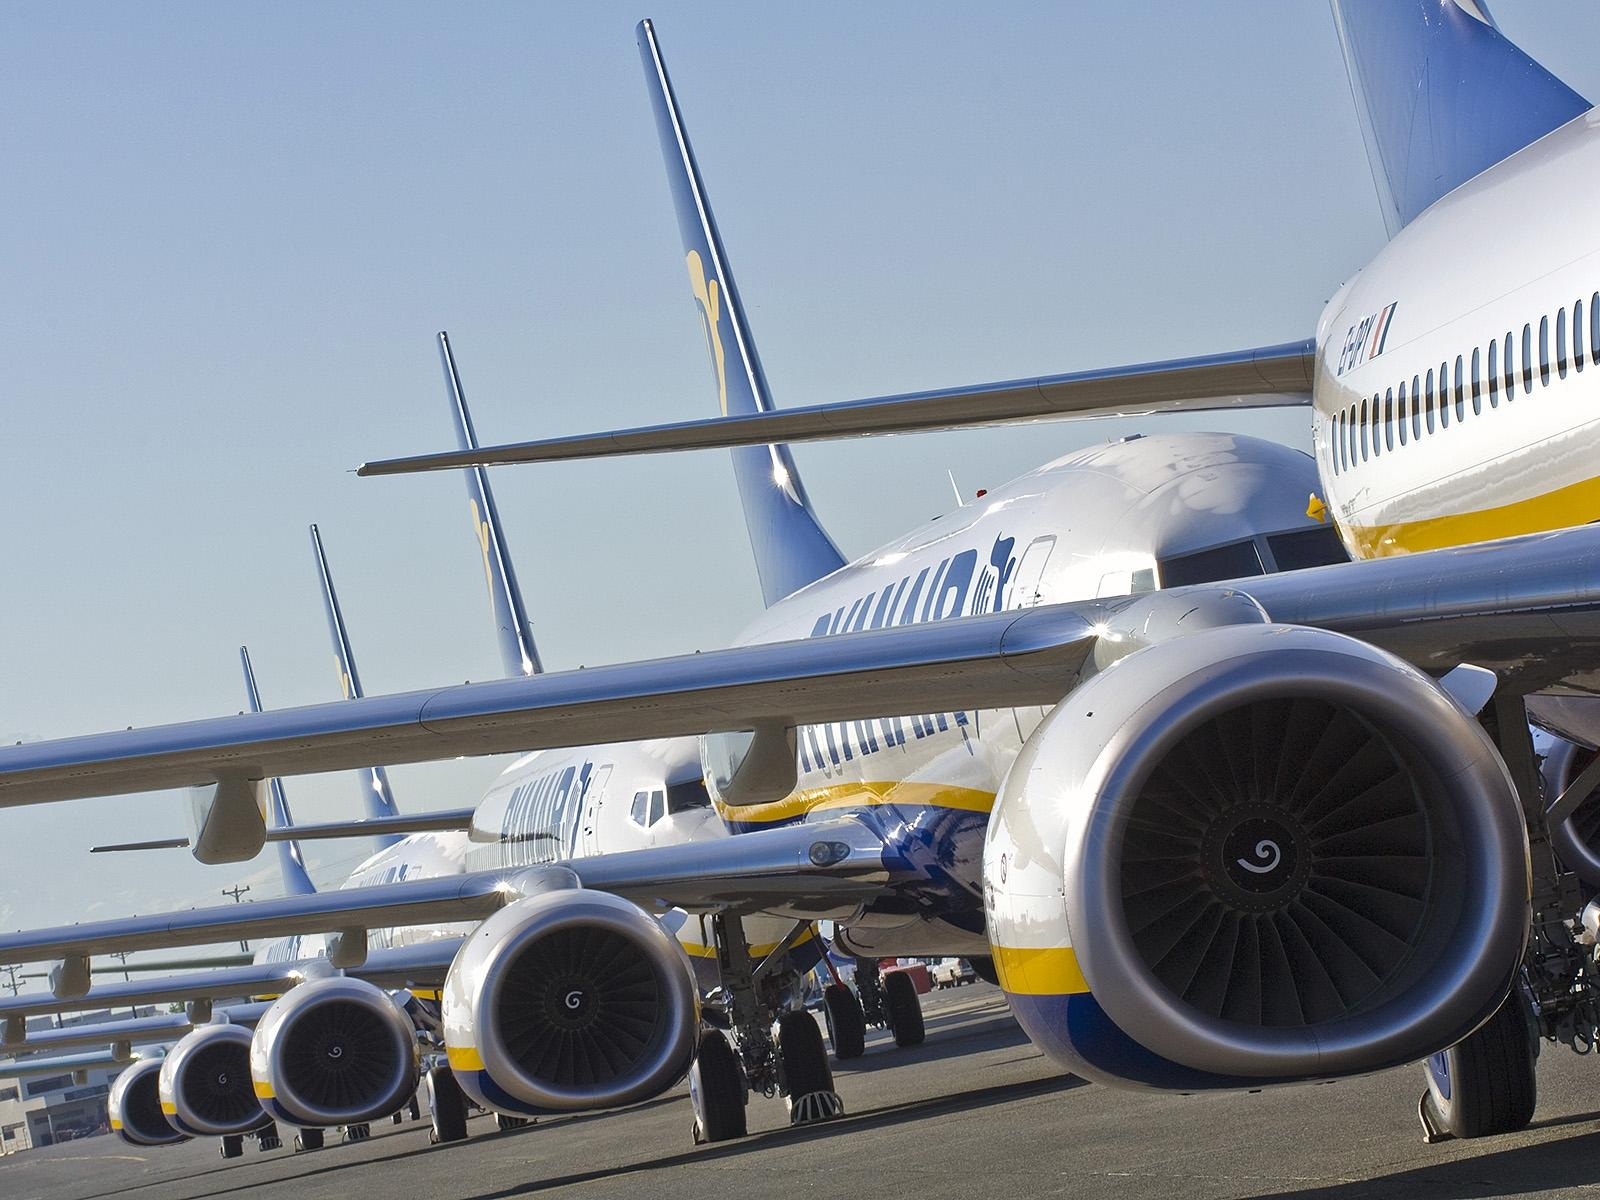 Ryanair to launch route to London from Romania's Oradea starting October